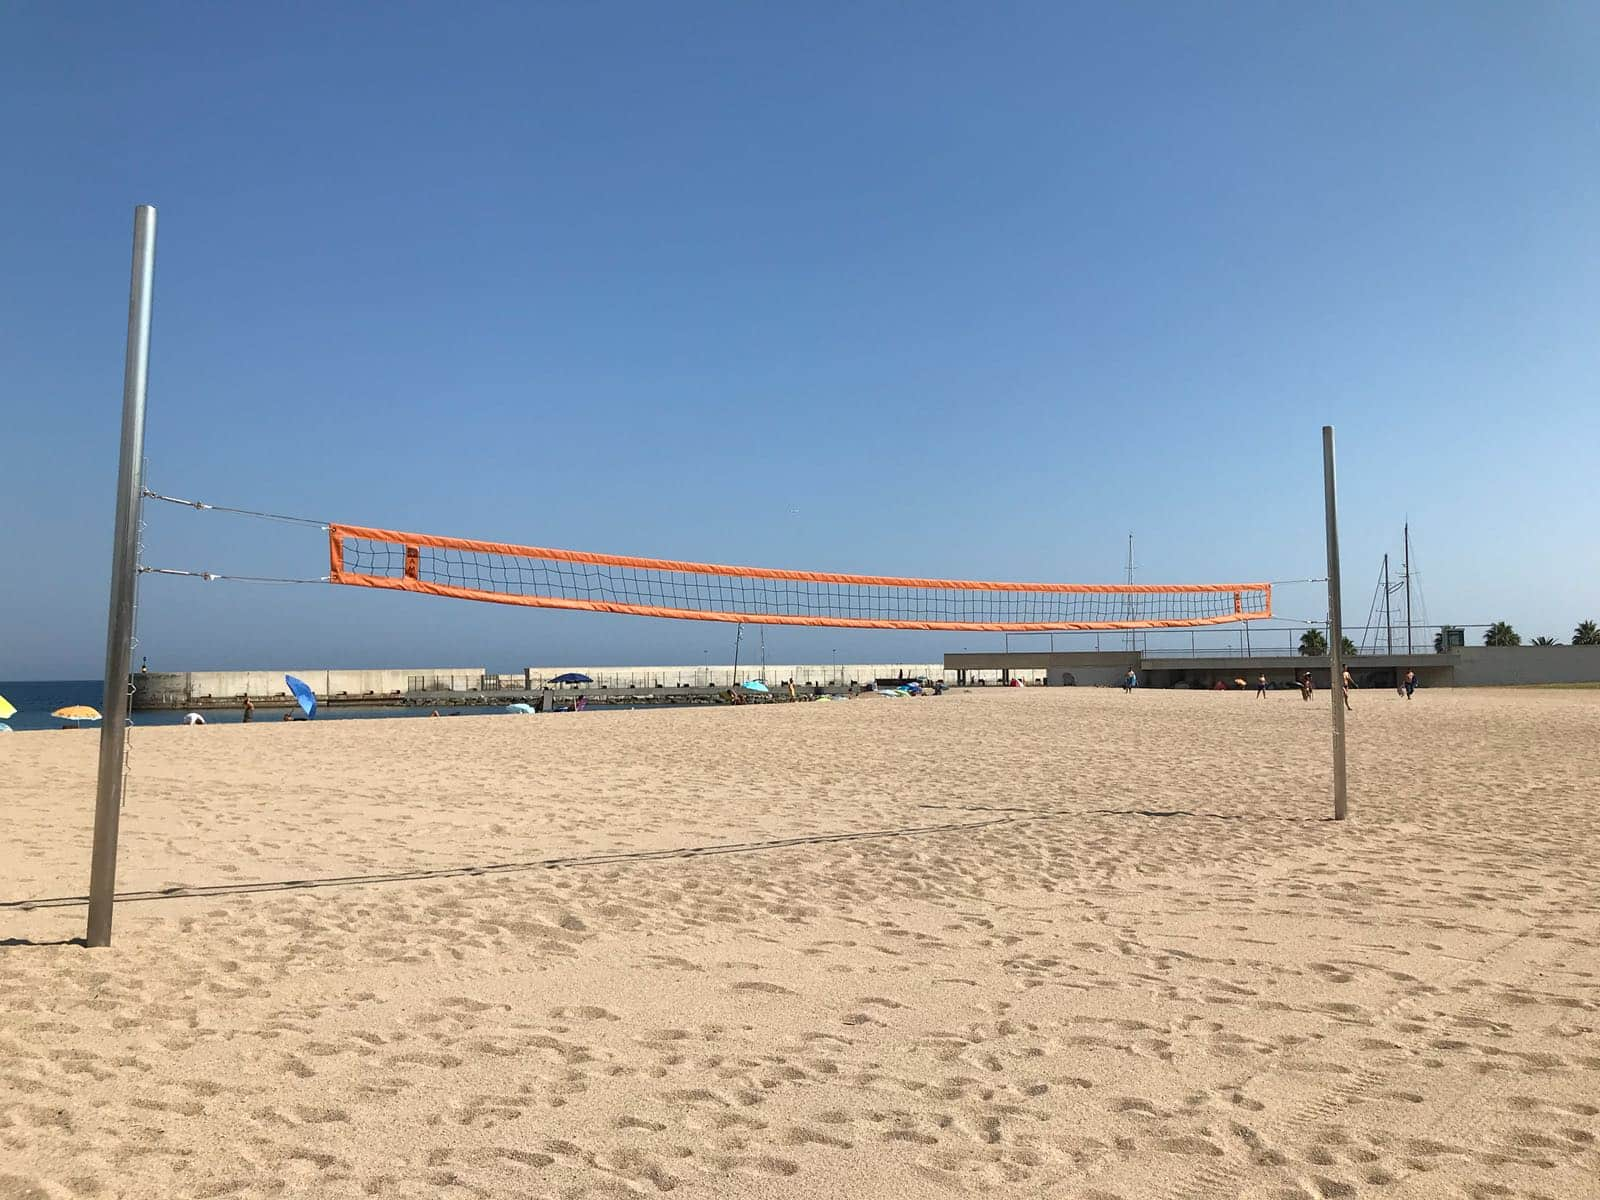 platja-del-forum-red-voleibol